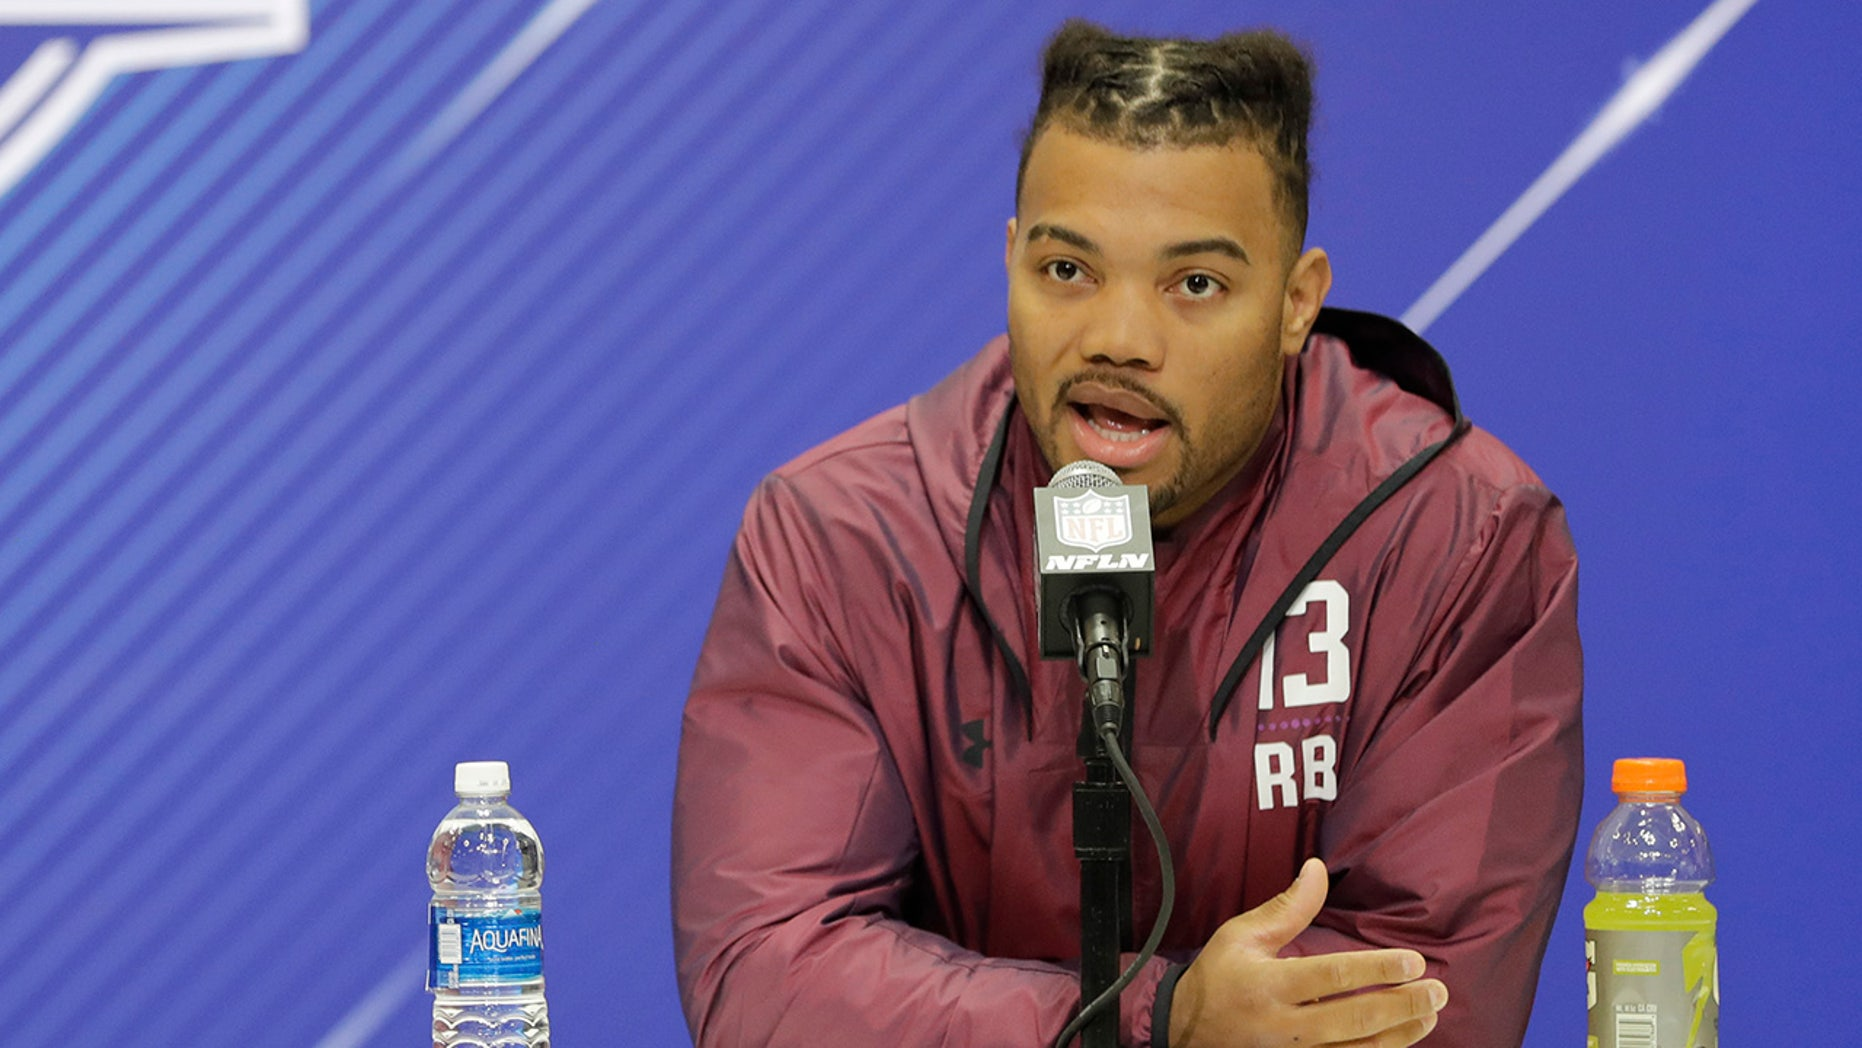 Louisiana State running back Derrius Guice speaks during a press conference at the NFL football scouting combine, Thursday, March 1, 2018, in Indianapolis.